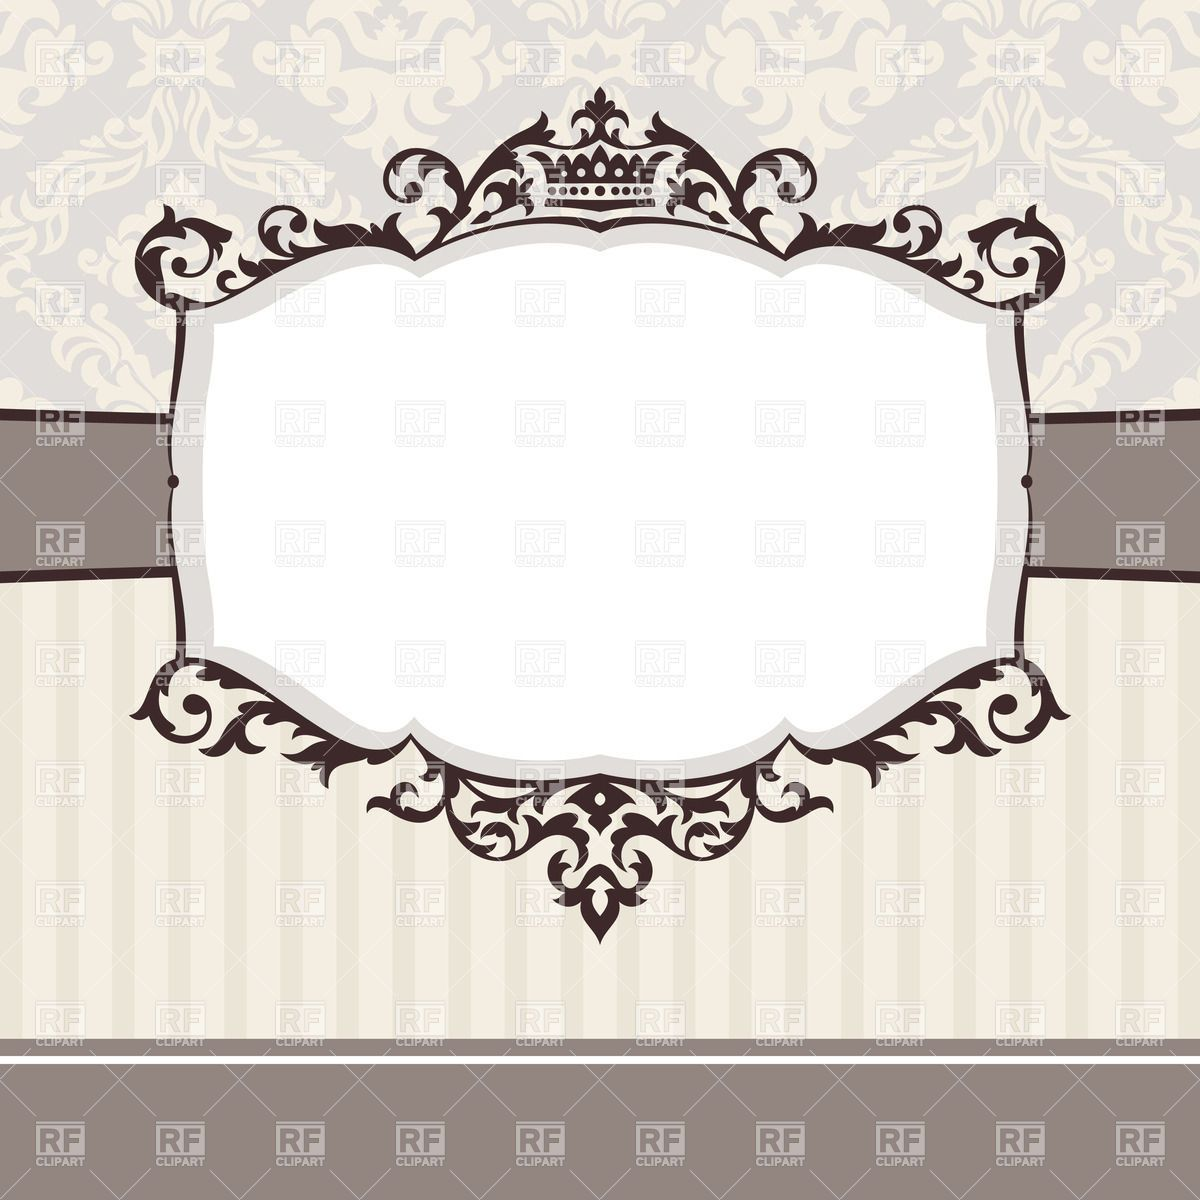 Abstract cute decorative vintage frame 37127 borders and frames abstract cute decorative vintage frame royalty free vector clip art image 37127 rfclipart junglespirit Gallery